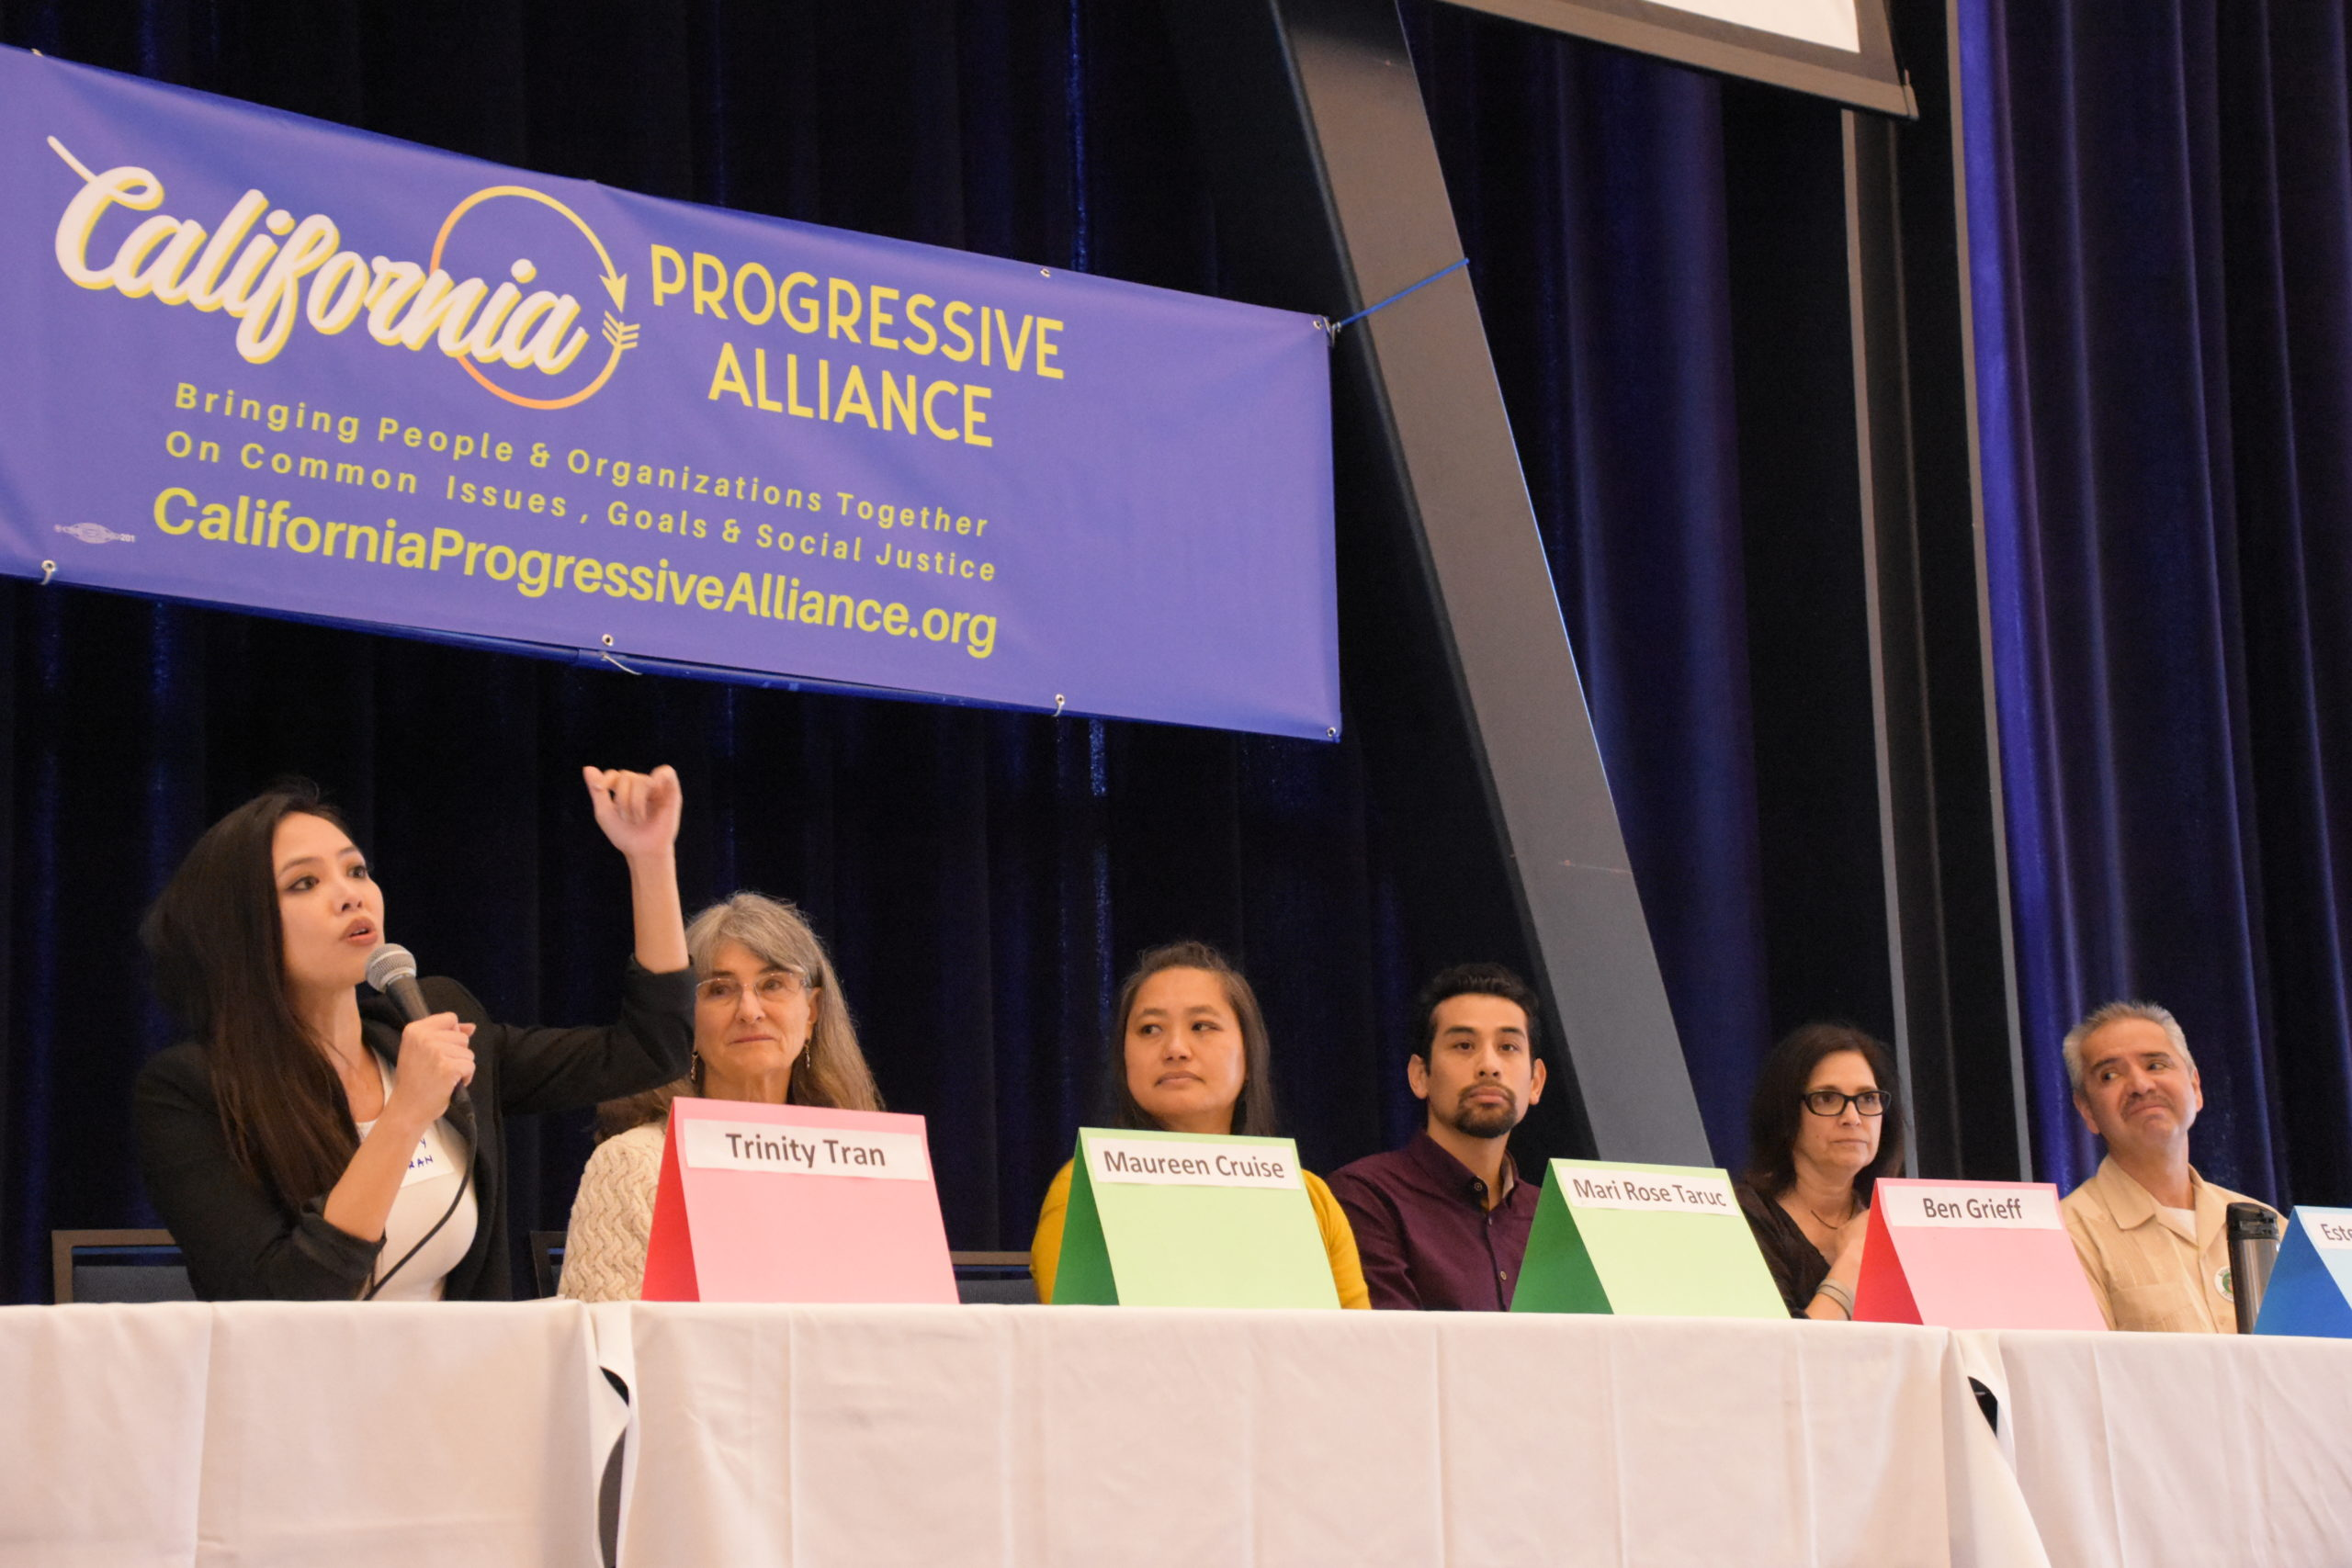 California Progressive Alliance Annual Meeting 2020 - Panel Discussion